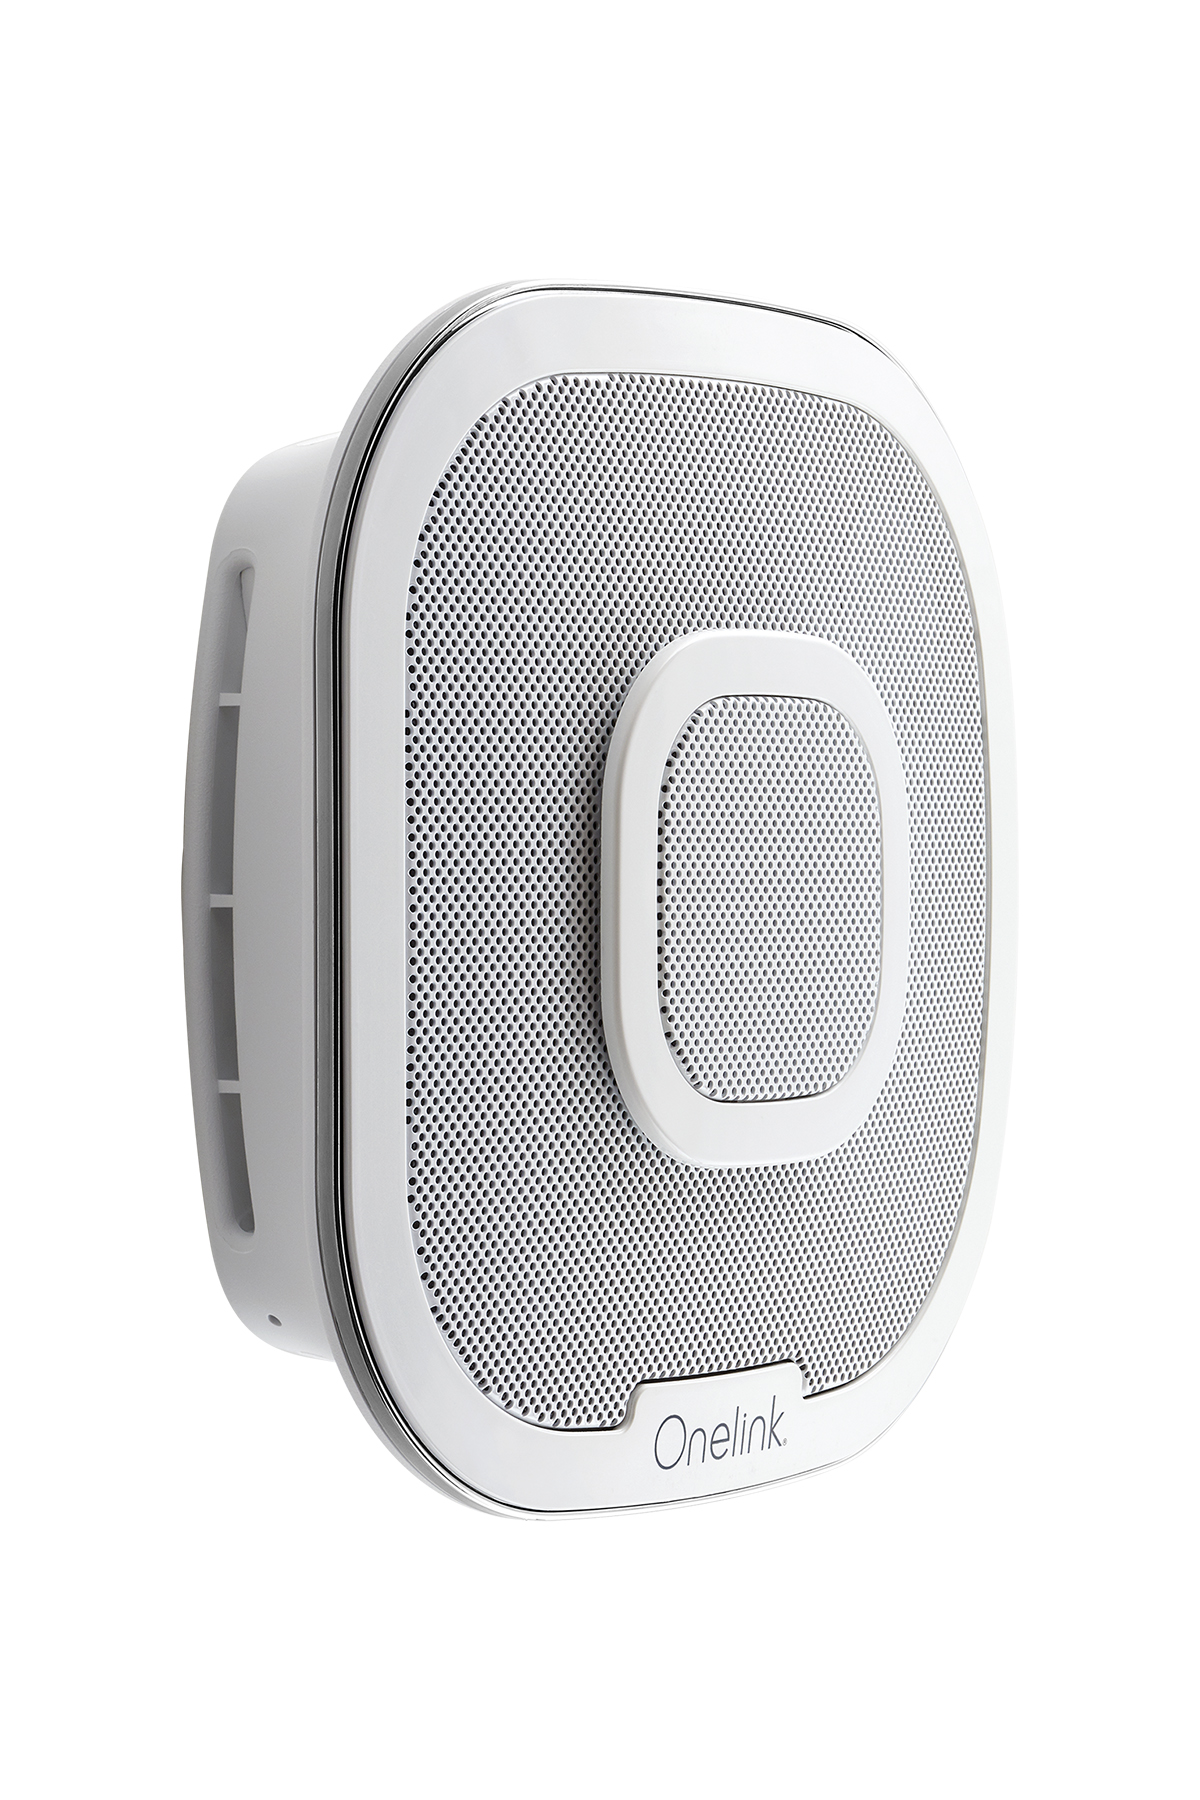 Onelink Safe & Sound: A 3-in-1 Smart Product for Your Home #ONELINKSTORY